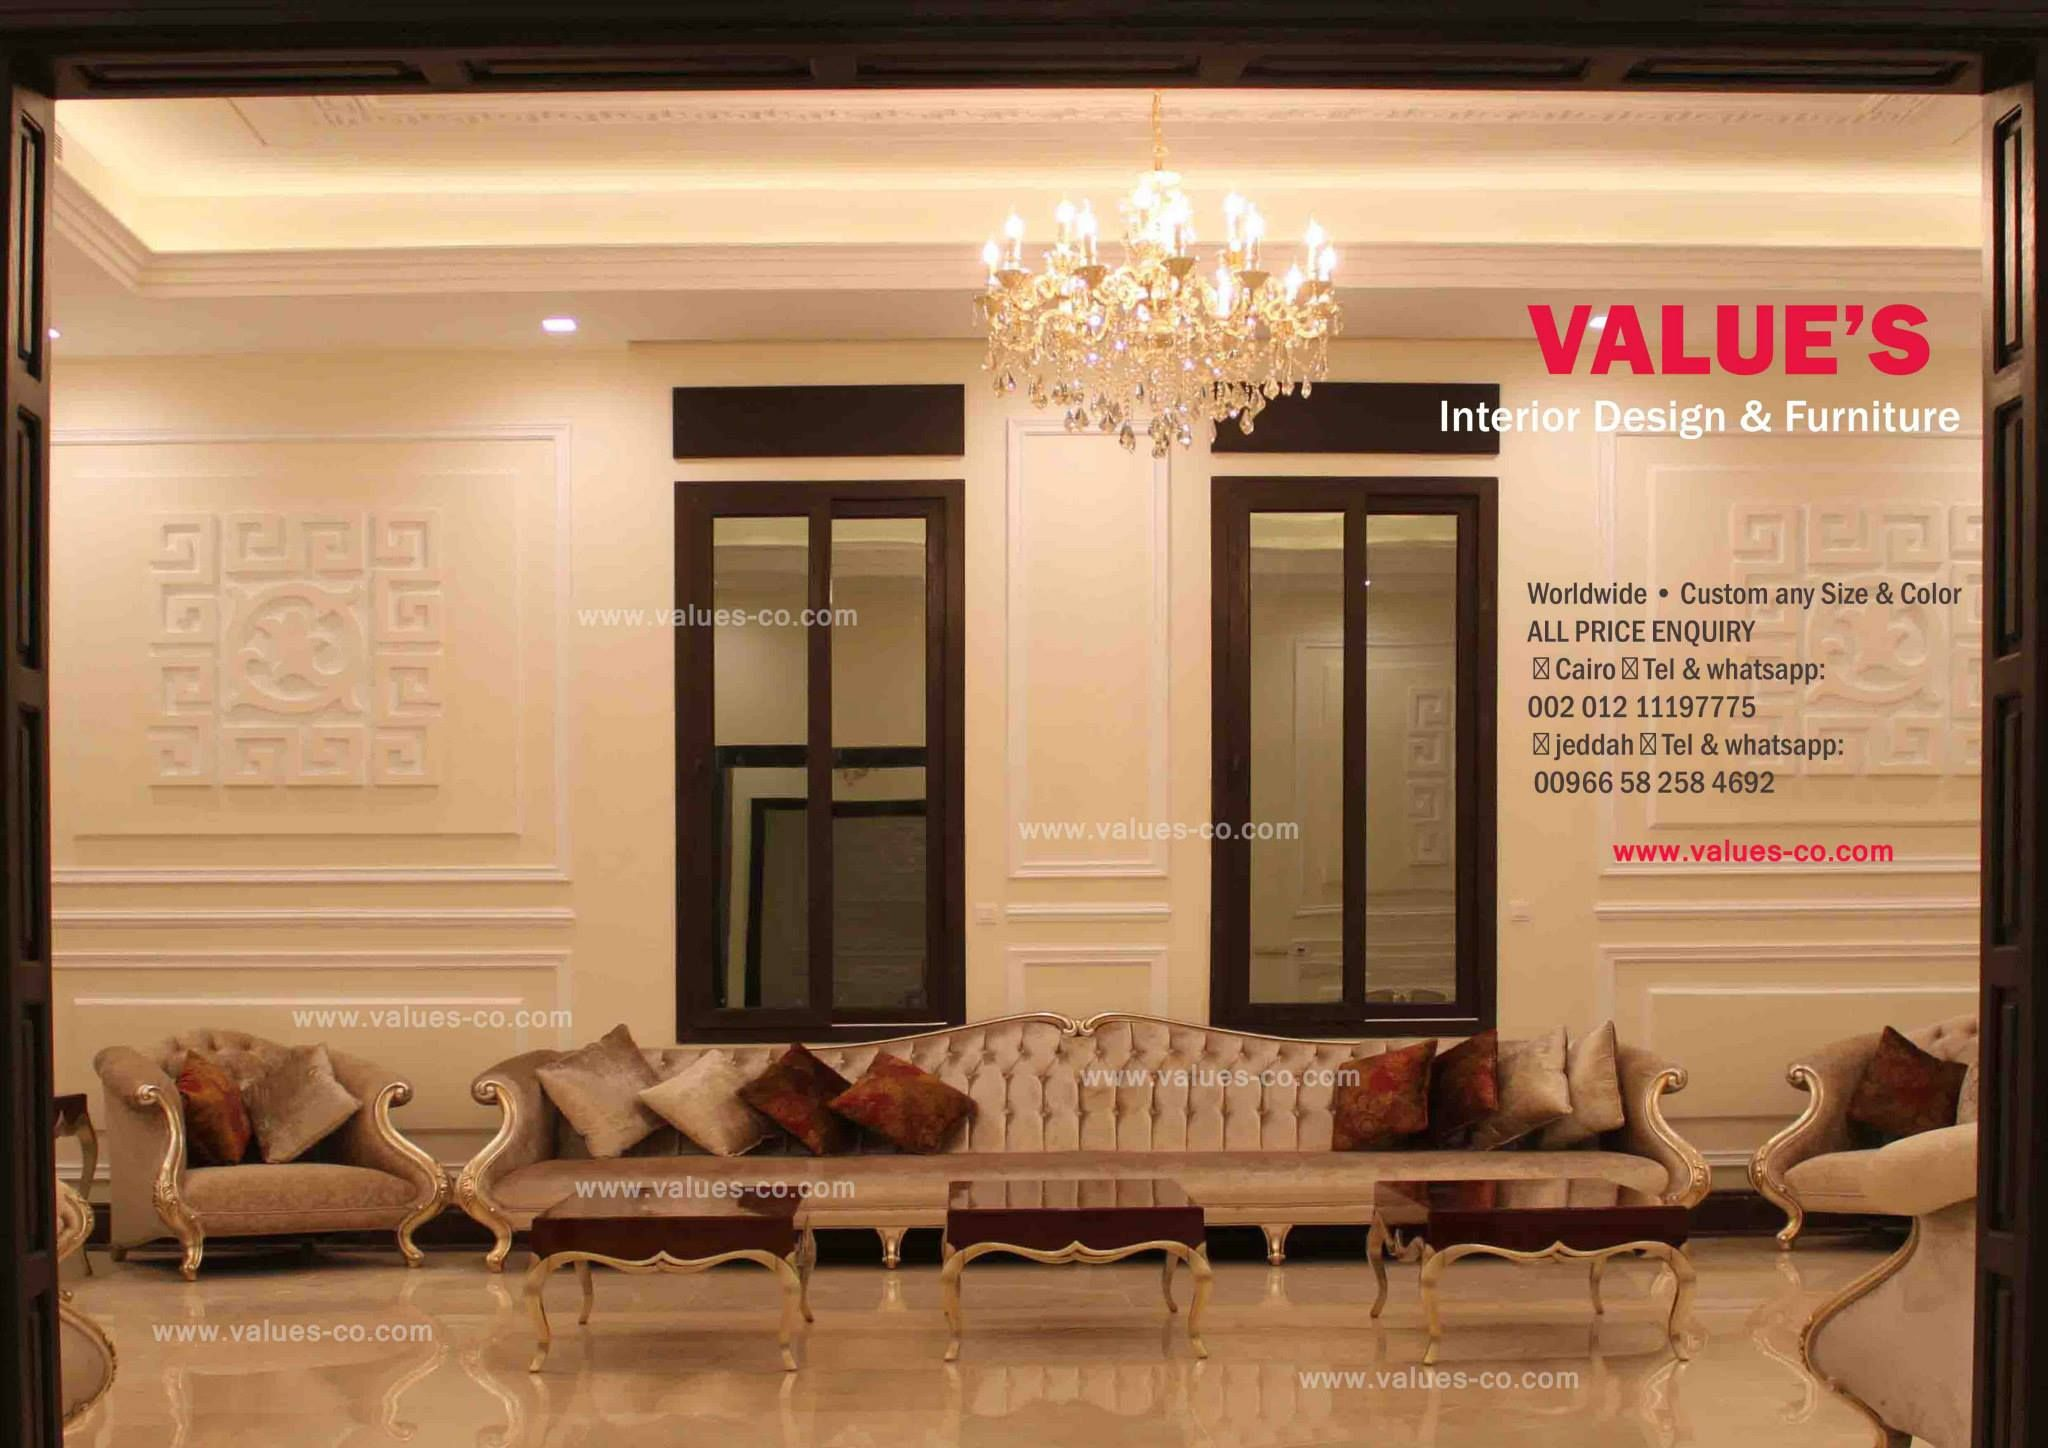 ▫️Values Design U0026 Build Turnkey Interior Spaces, Design, Manufacture And  Supply Of Furniture